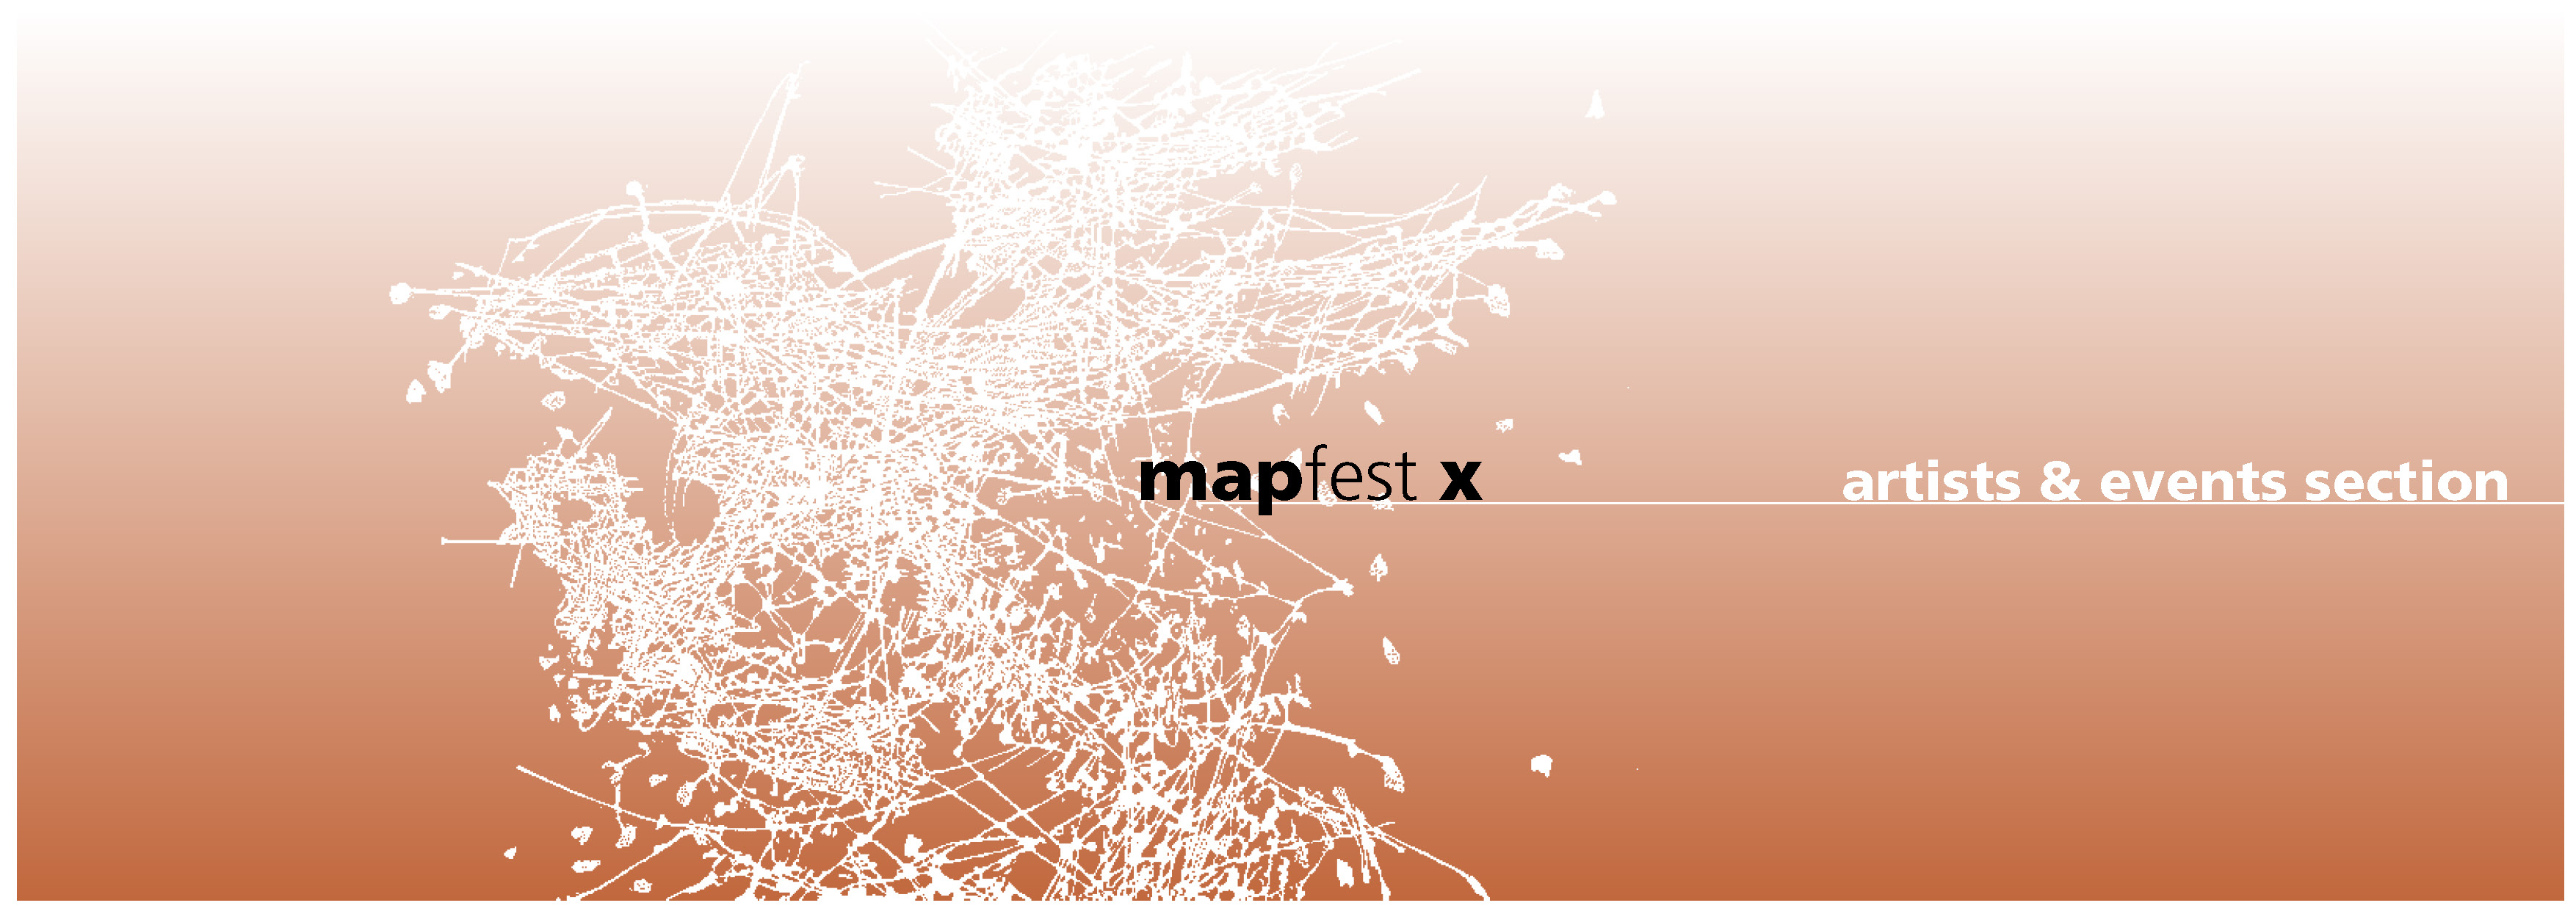 MAP-X-ARTISTS-2018-BOOKLET-FAV5-compressed_Page_06